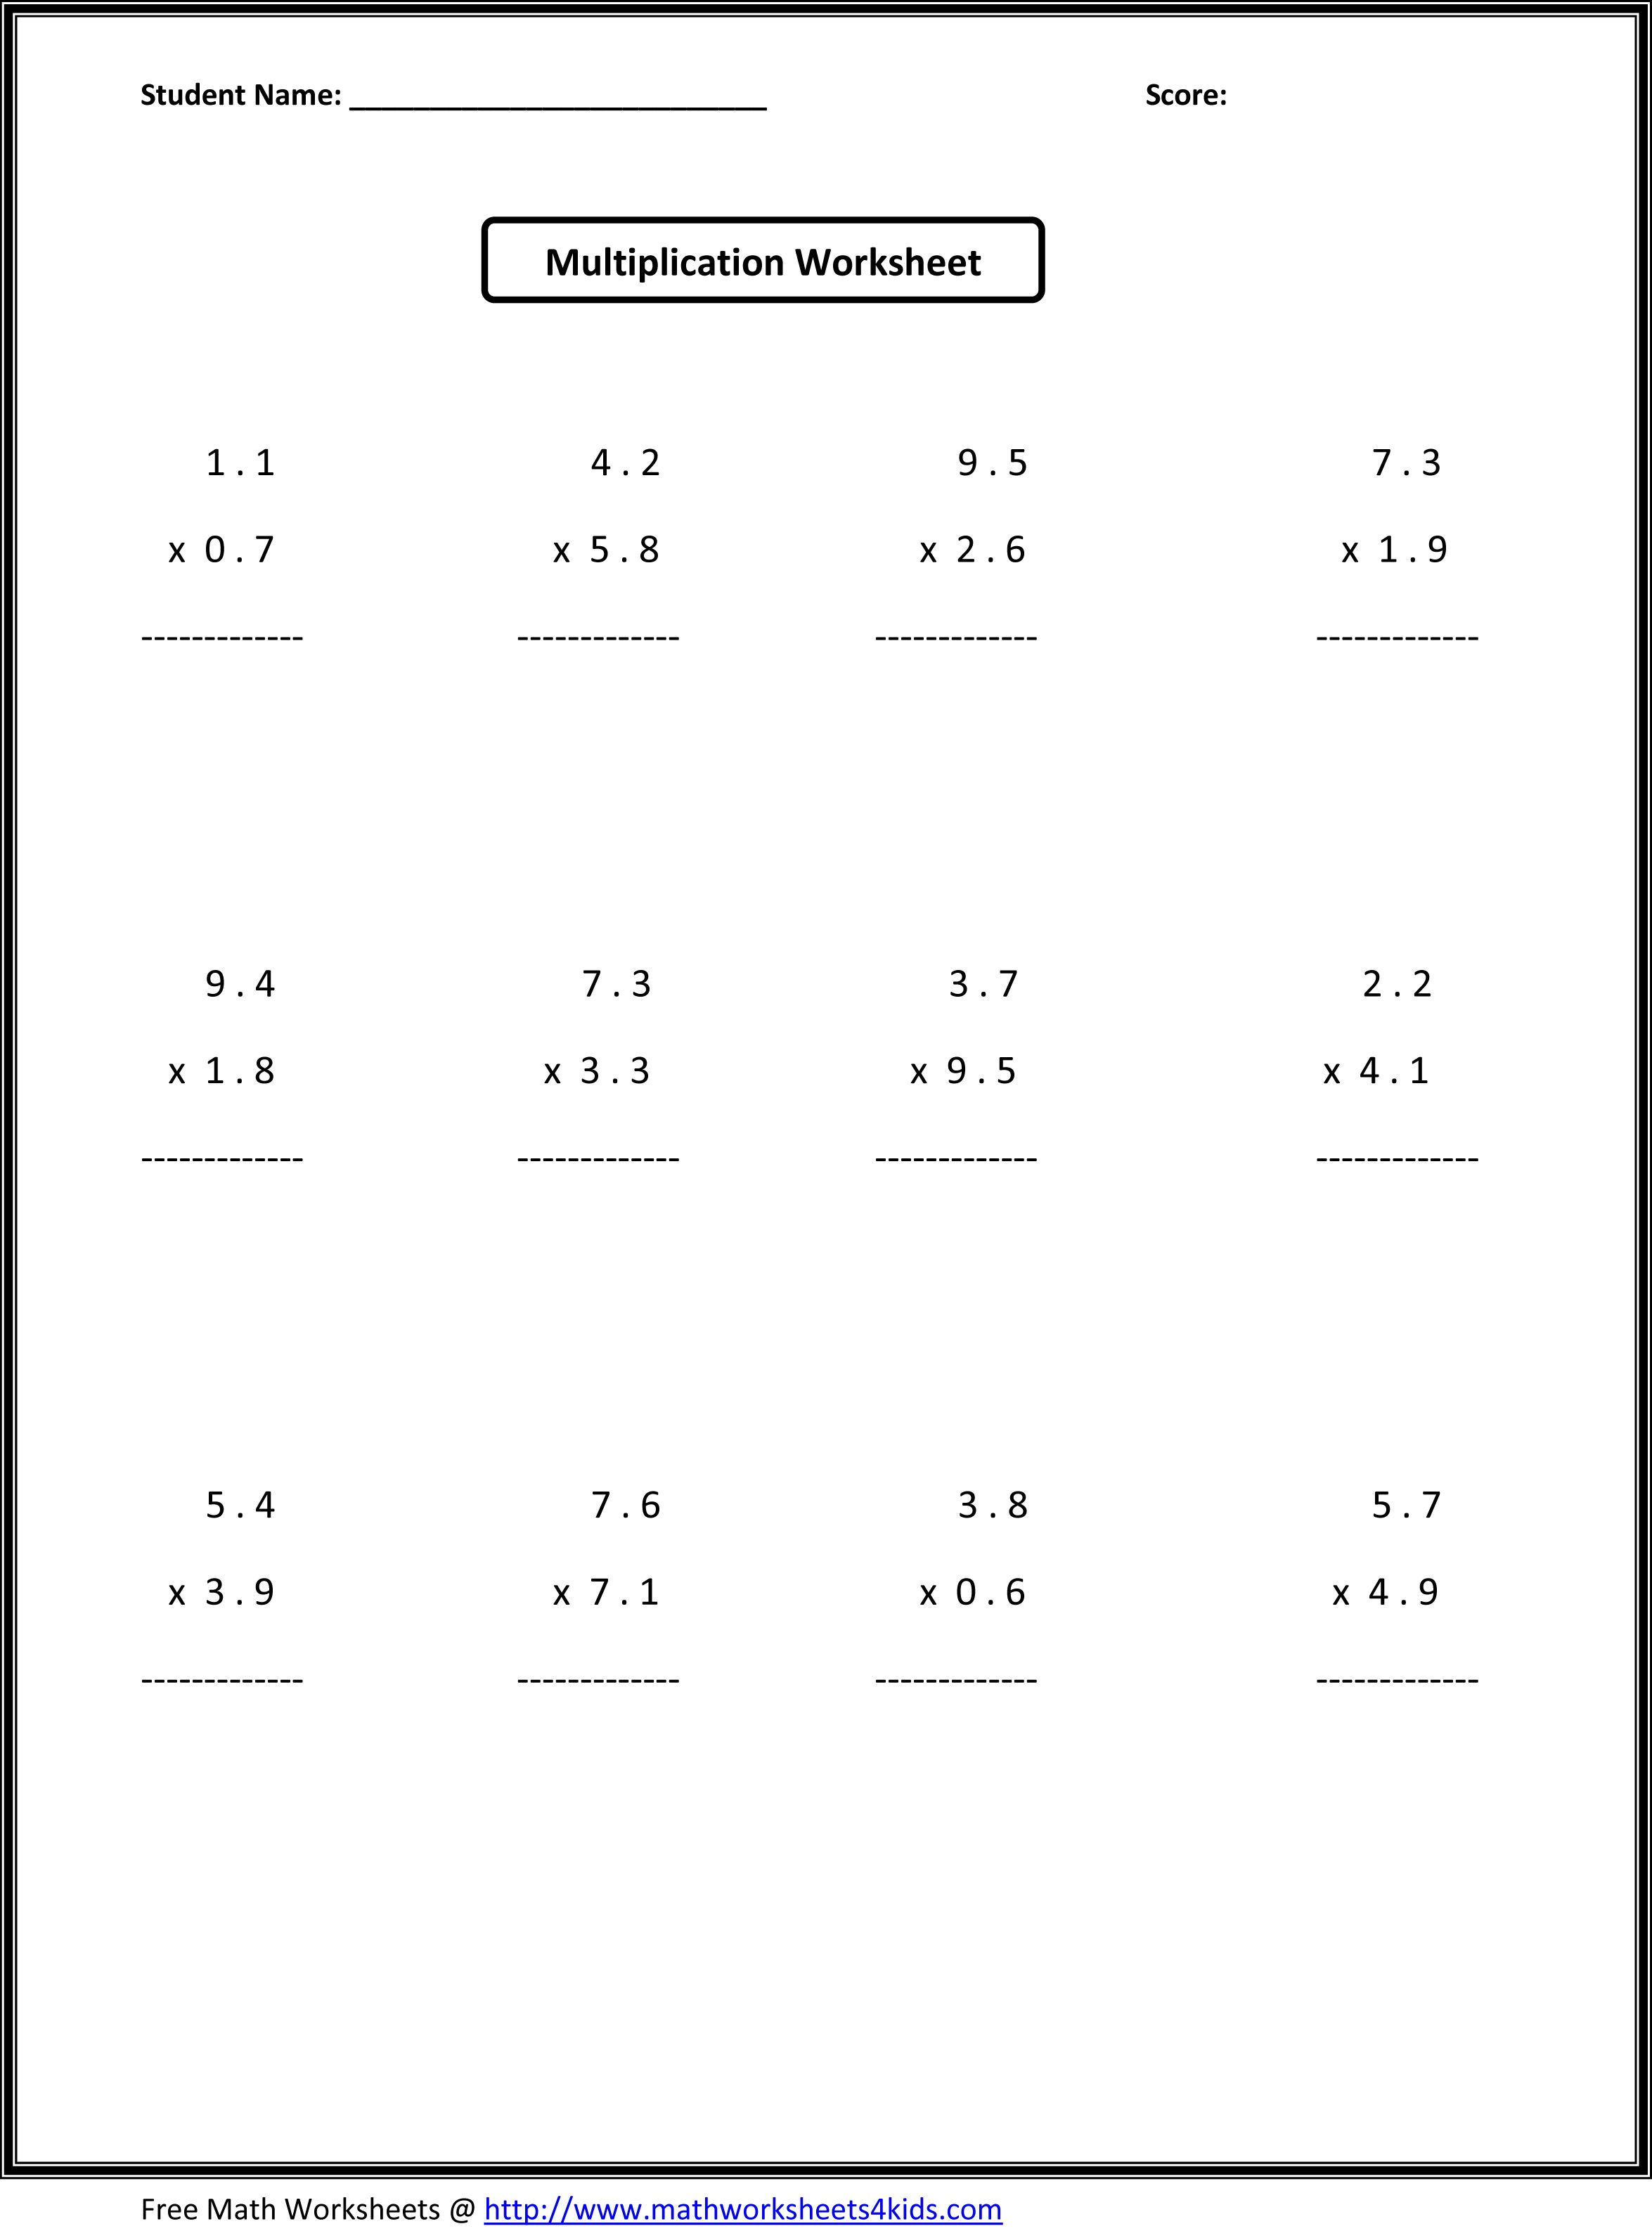 Uncategorized Math Worksheets For 6th Grade Free Printable six grade math worksheets talktoak 7th value absolute value